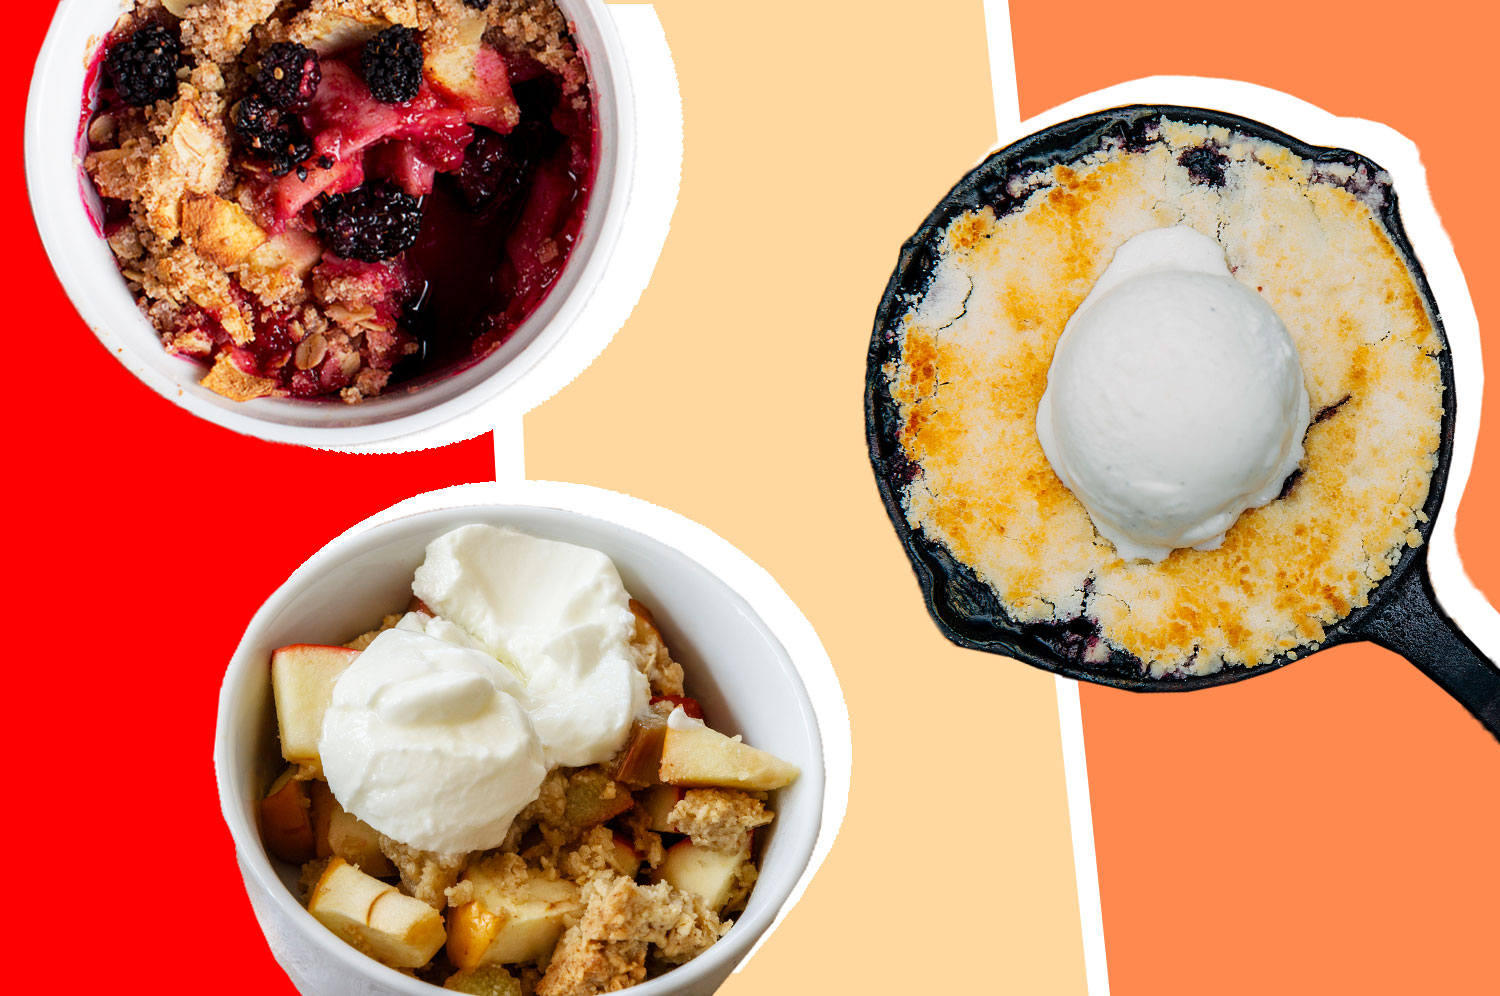 A cobbler in a skillet, a bowl of apple crisp, and a bowl of fruit crumble